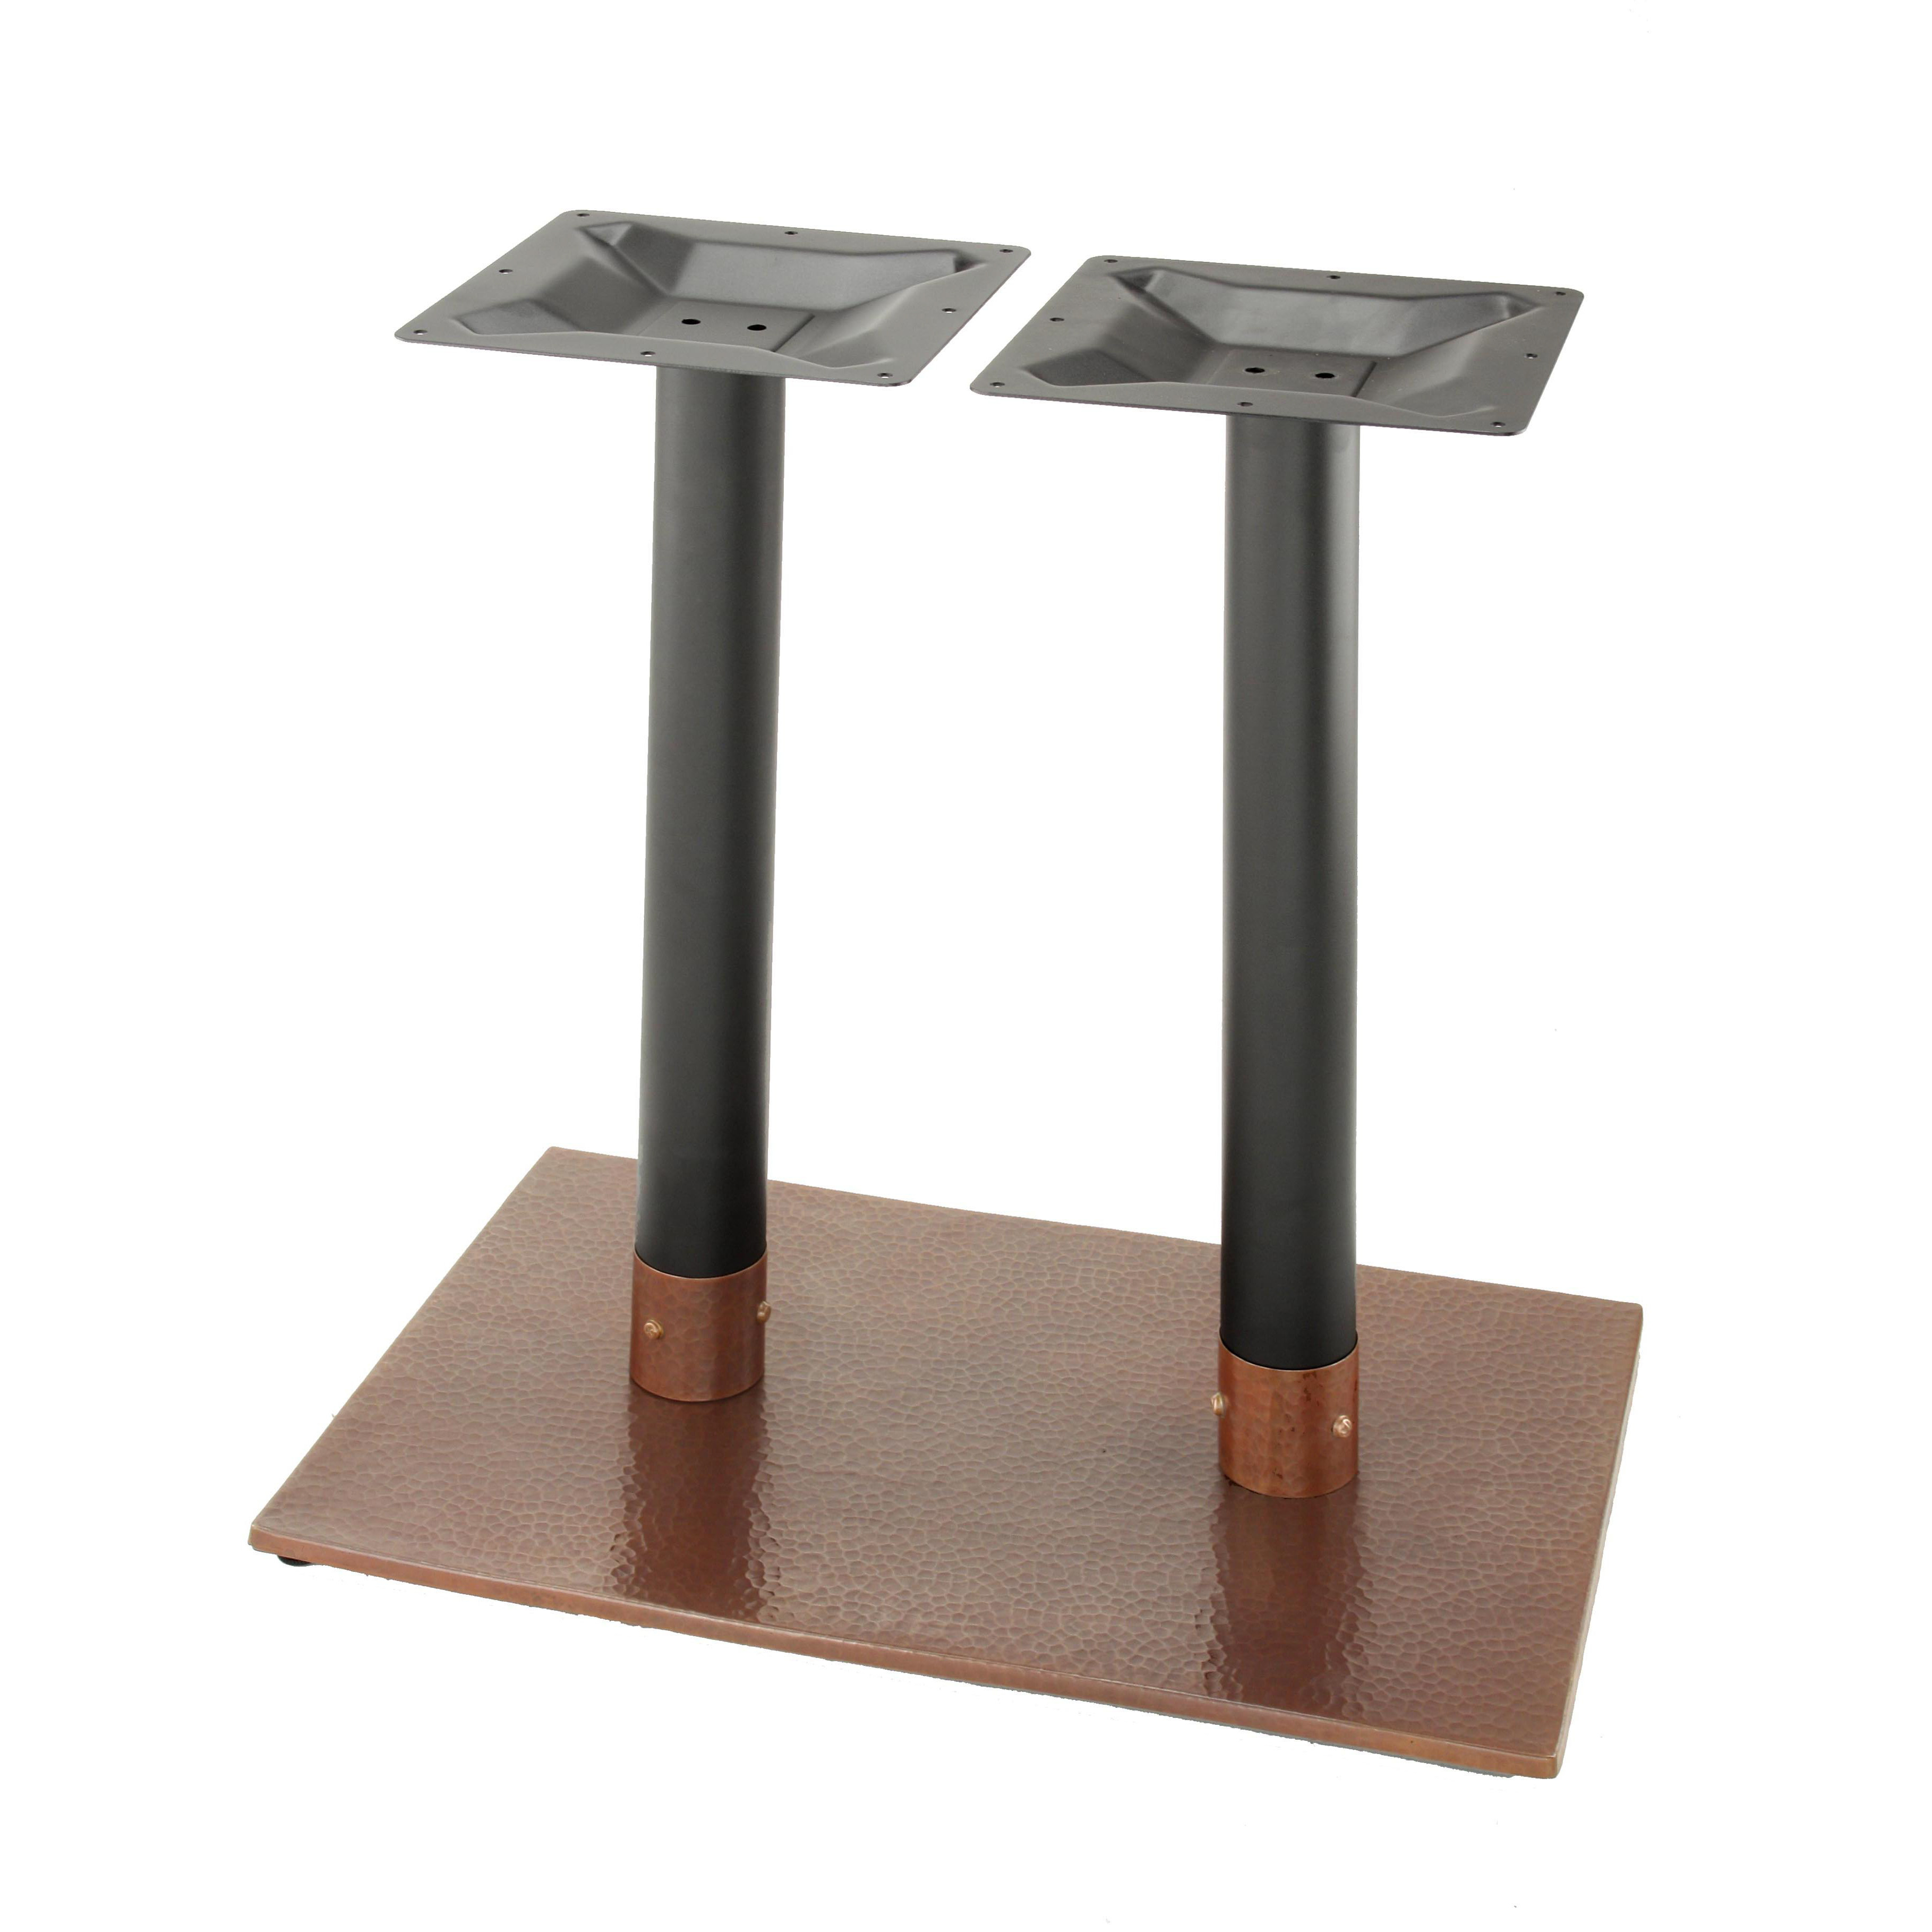 table bases penny-1828 - hammered copper table base - coffee table height (18 MZSWGEC